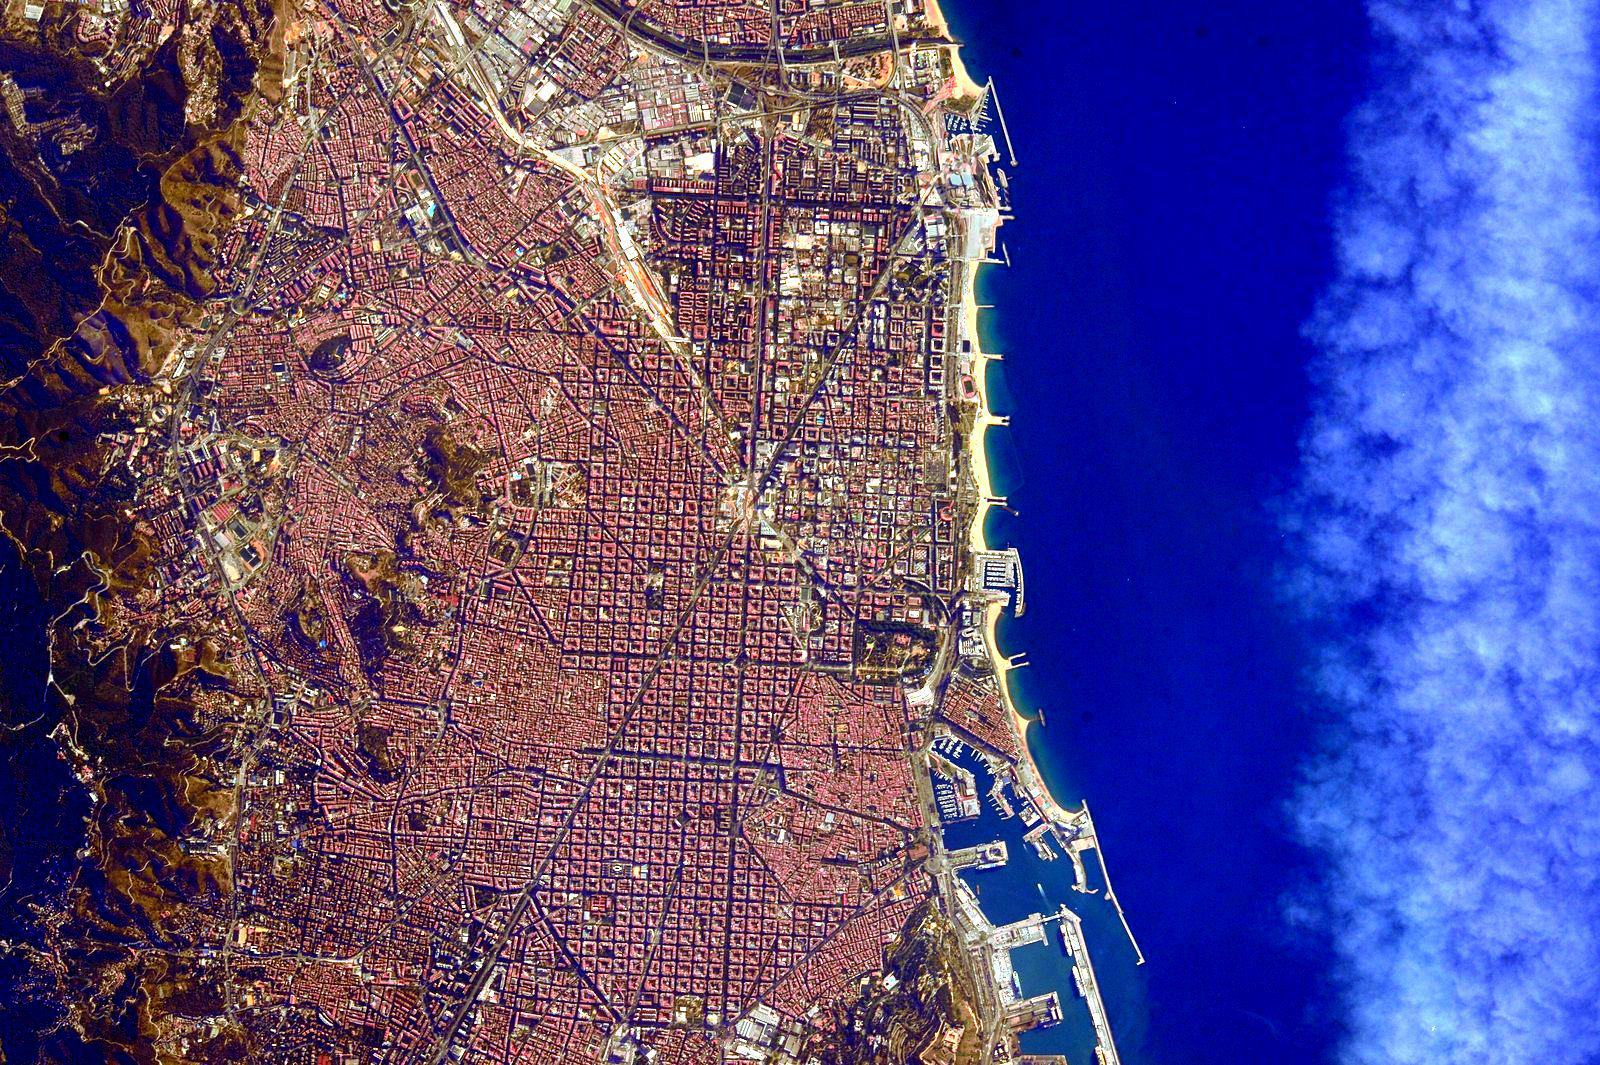 Barcelona from space